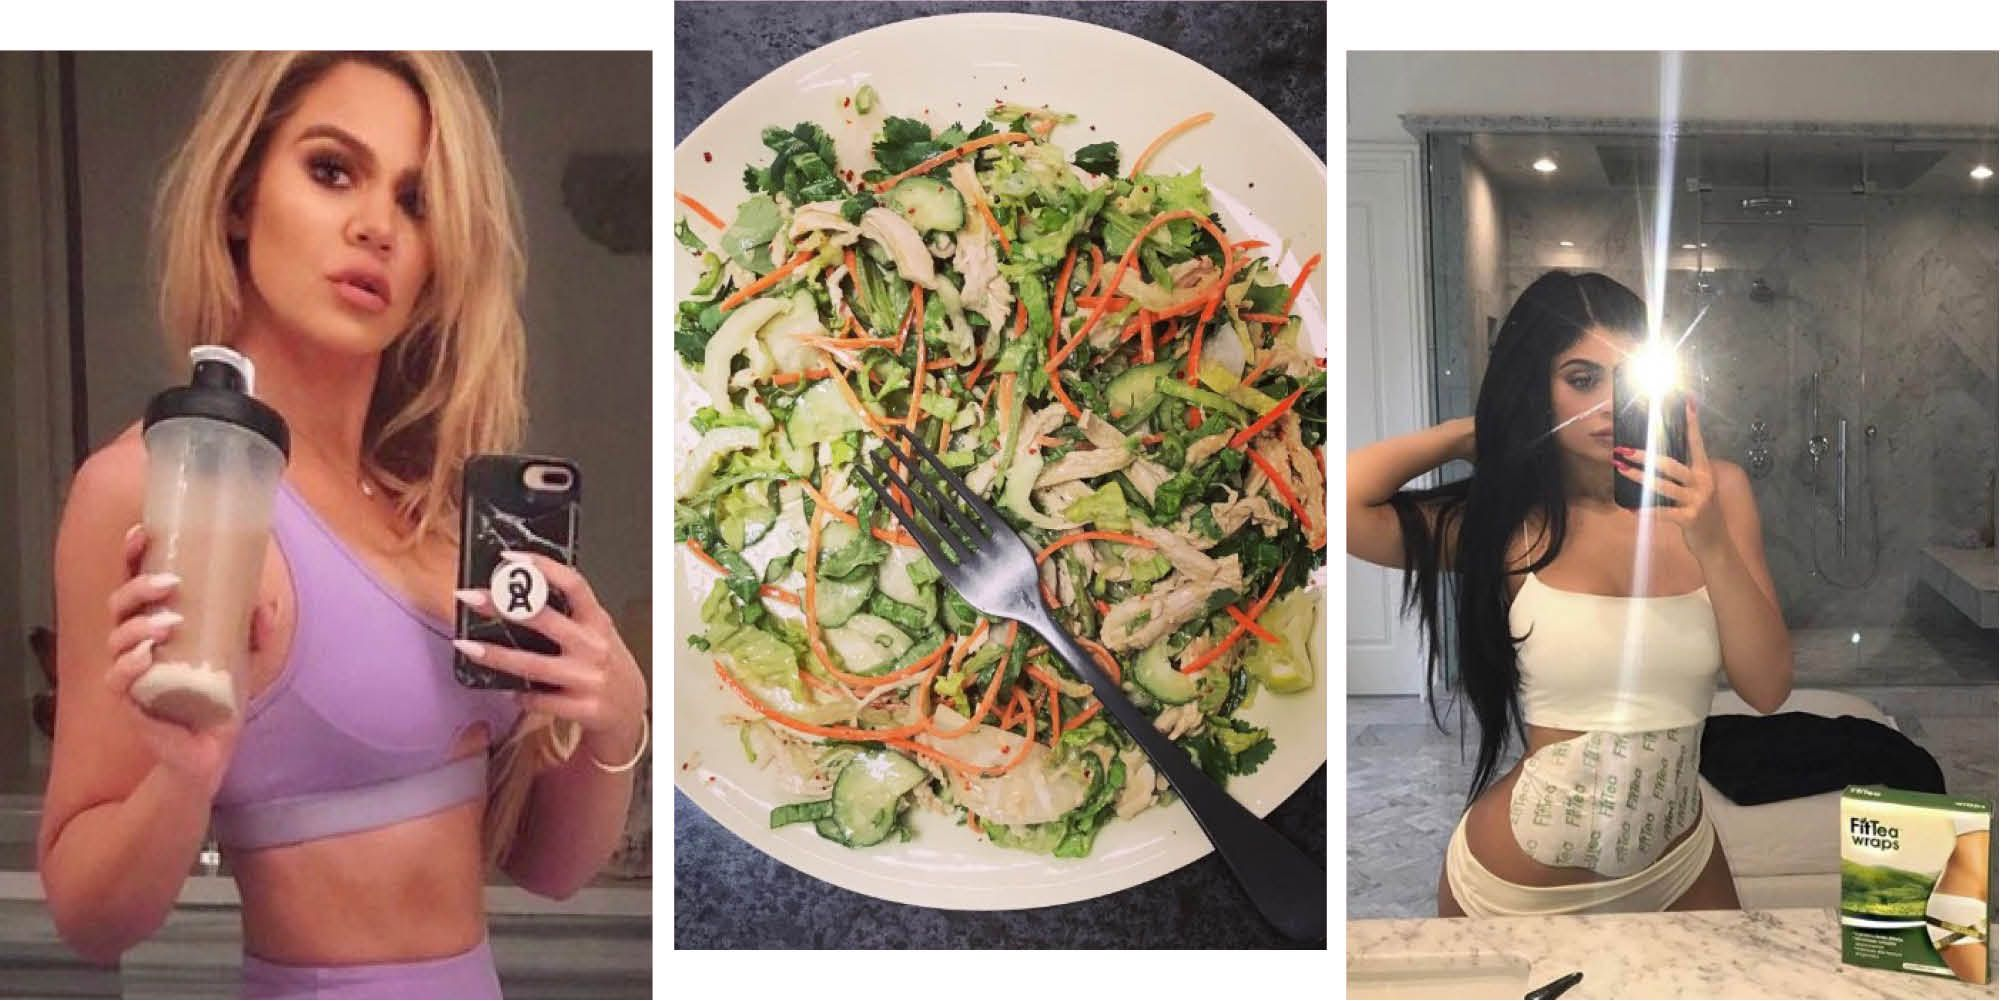 5 Celebrity Fad Diets You Should Probably Avoid